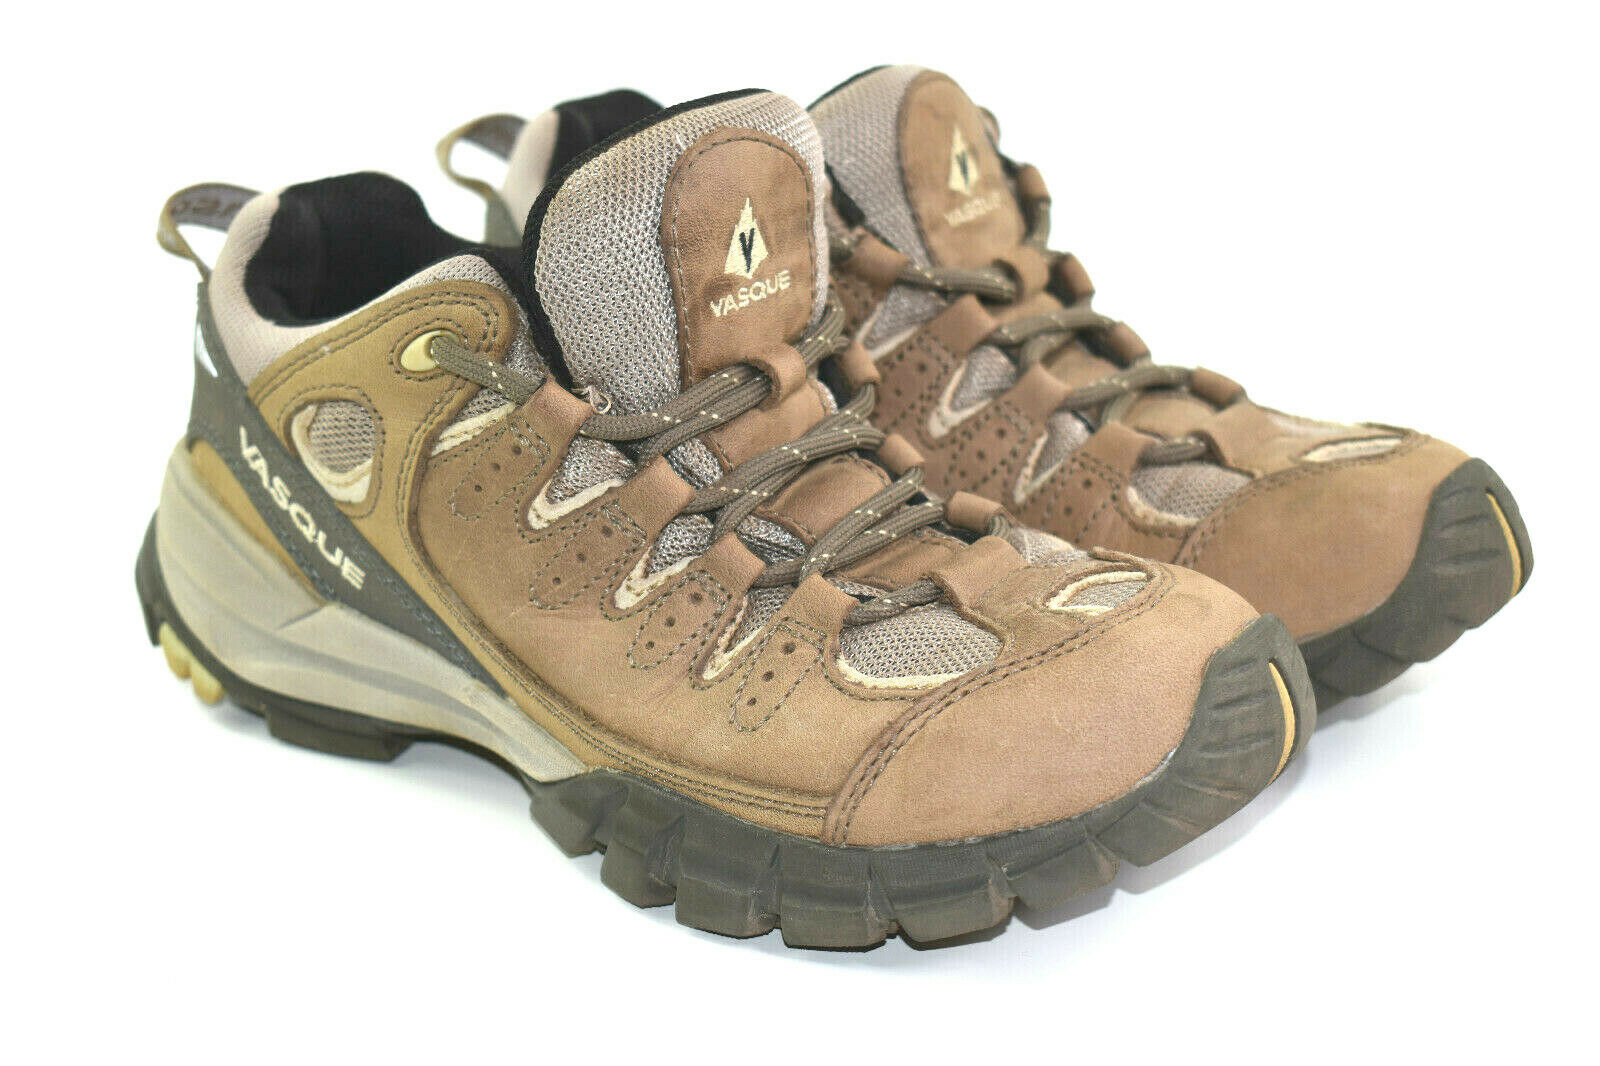 Vasque Mantra Women's Brown Leather Hiking shoes Size 7.5 M